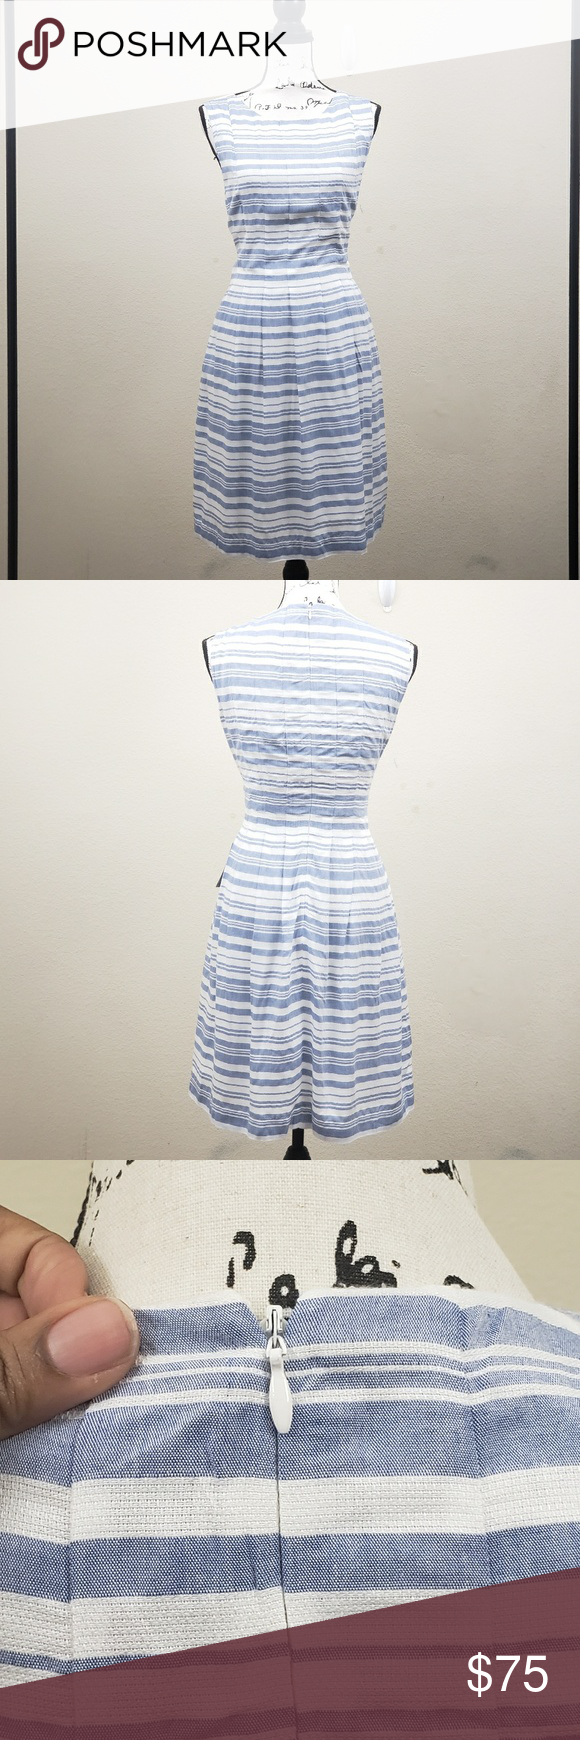 New Vince Camuto White Blue Striped Dress Size 14 Blue Striped Dress Striped Dress Size 14 Dresses [ 1740 x 580 Pixel ]